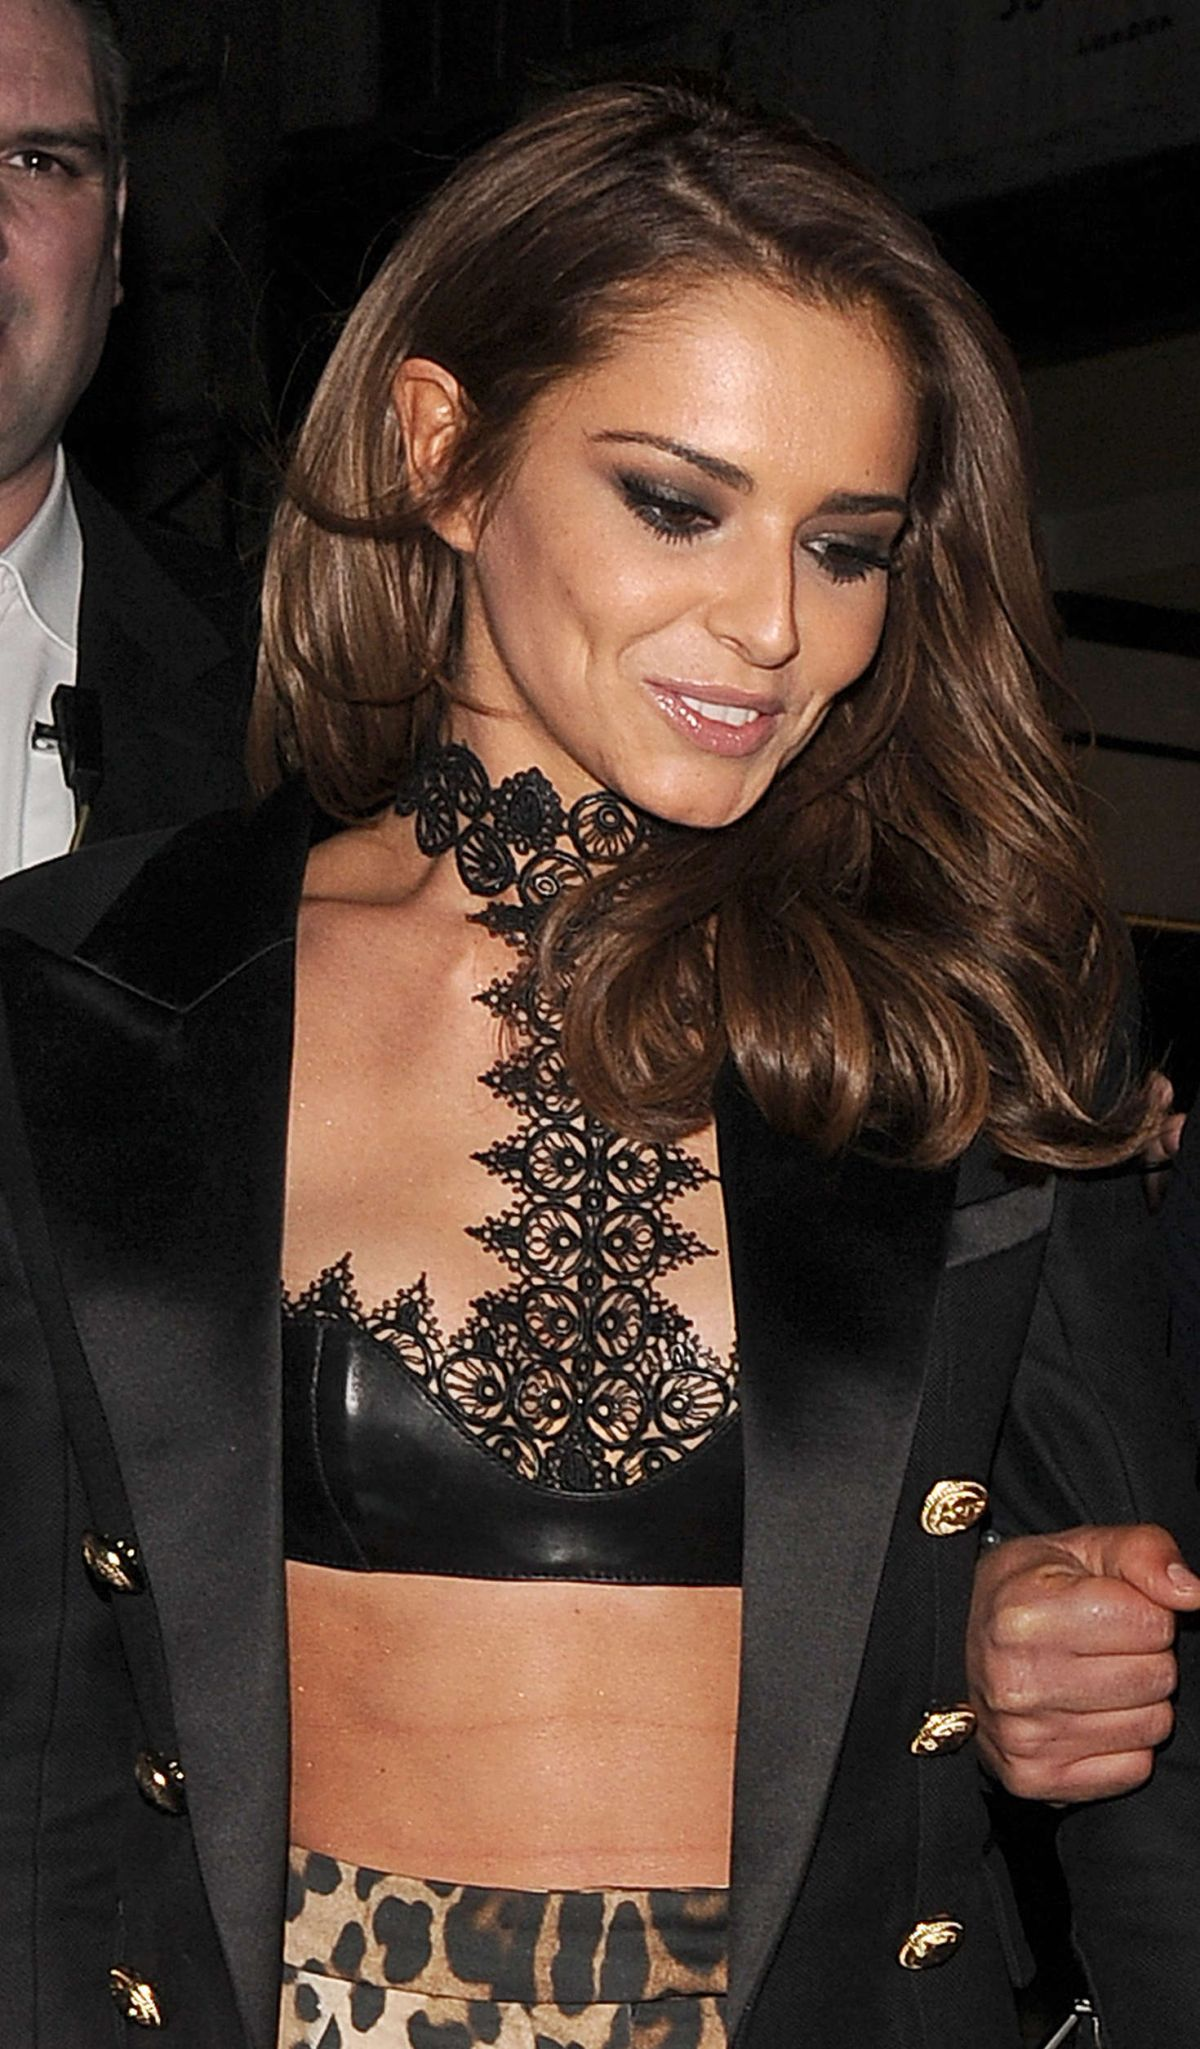 Pics Cheryl Fernandez-Versini nude (45 foto and video), Topless, Leaked, Boobs, cameltoe 2020